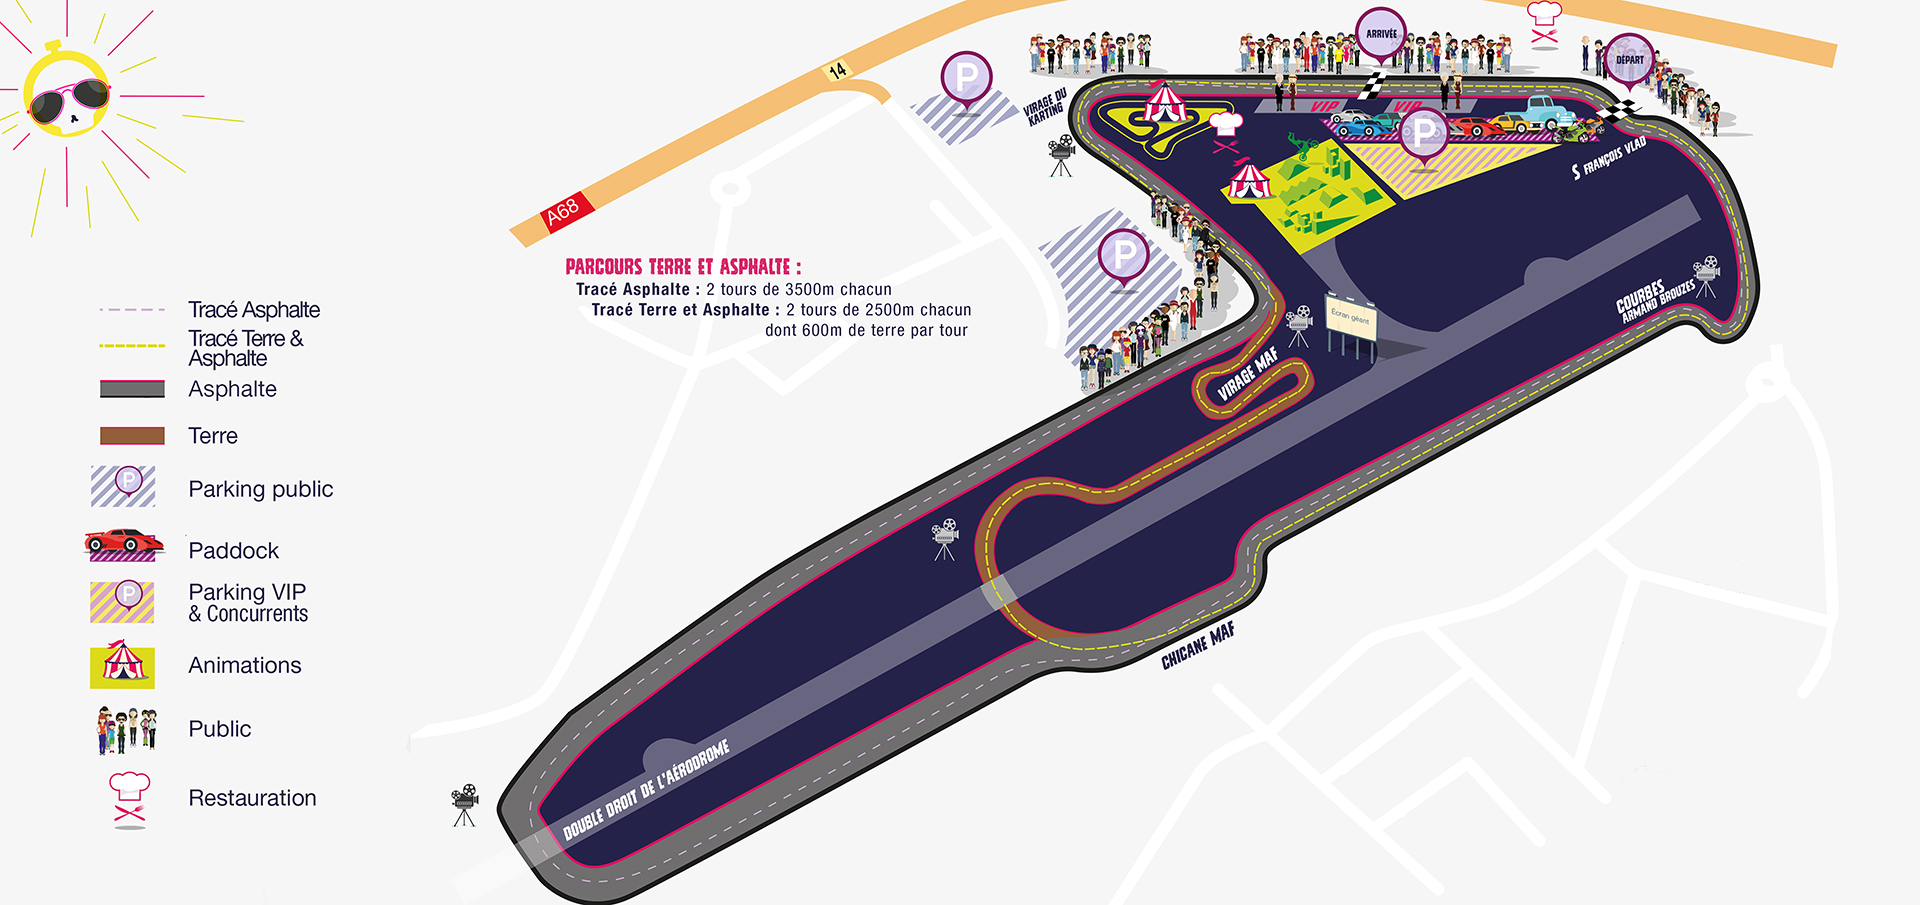 MOTORSPORT FESTIVAL - 2016 - map track - Albi - FRance